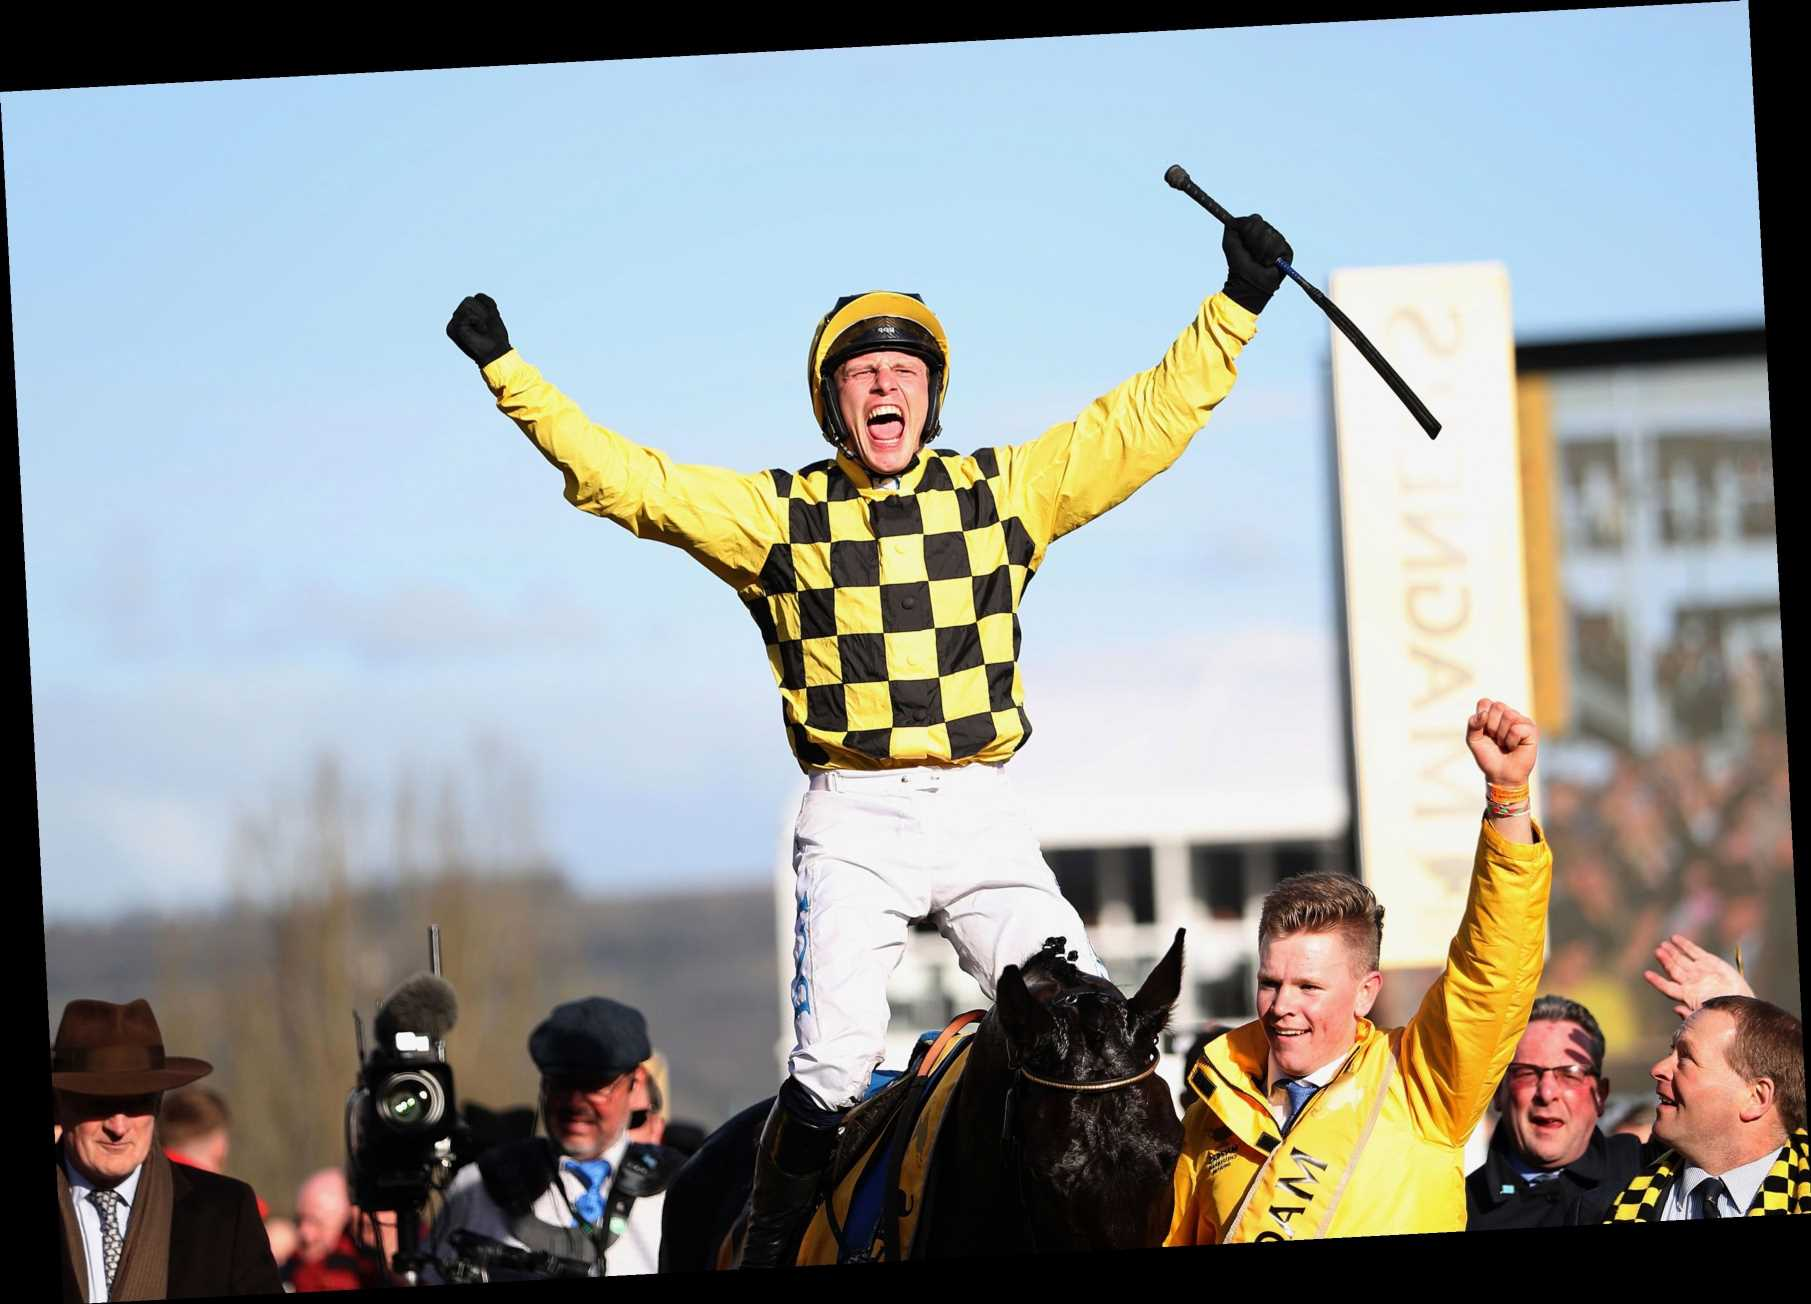 Cheltenham Festival 2021 tips: Best win only bets and odds for main races including the Gold Cup